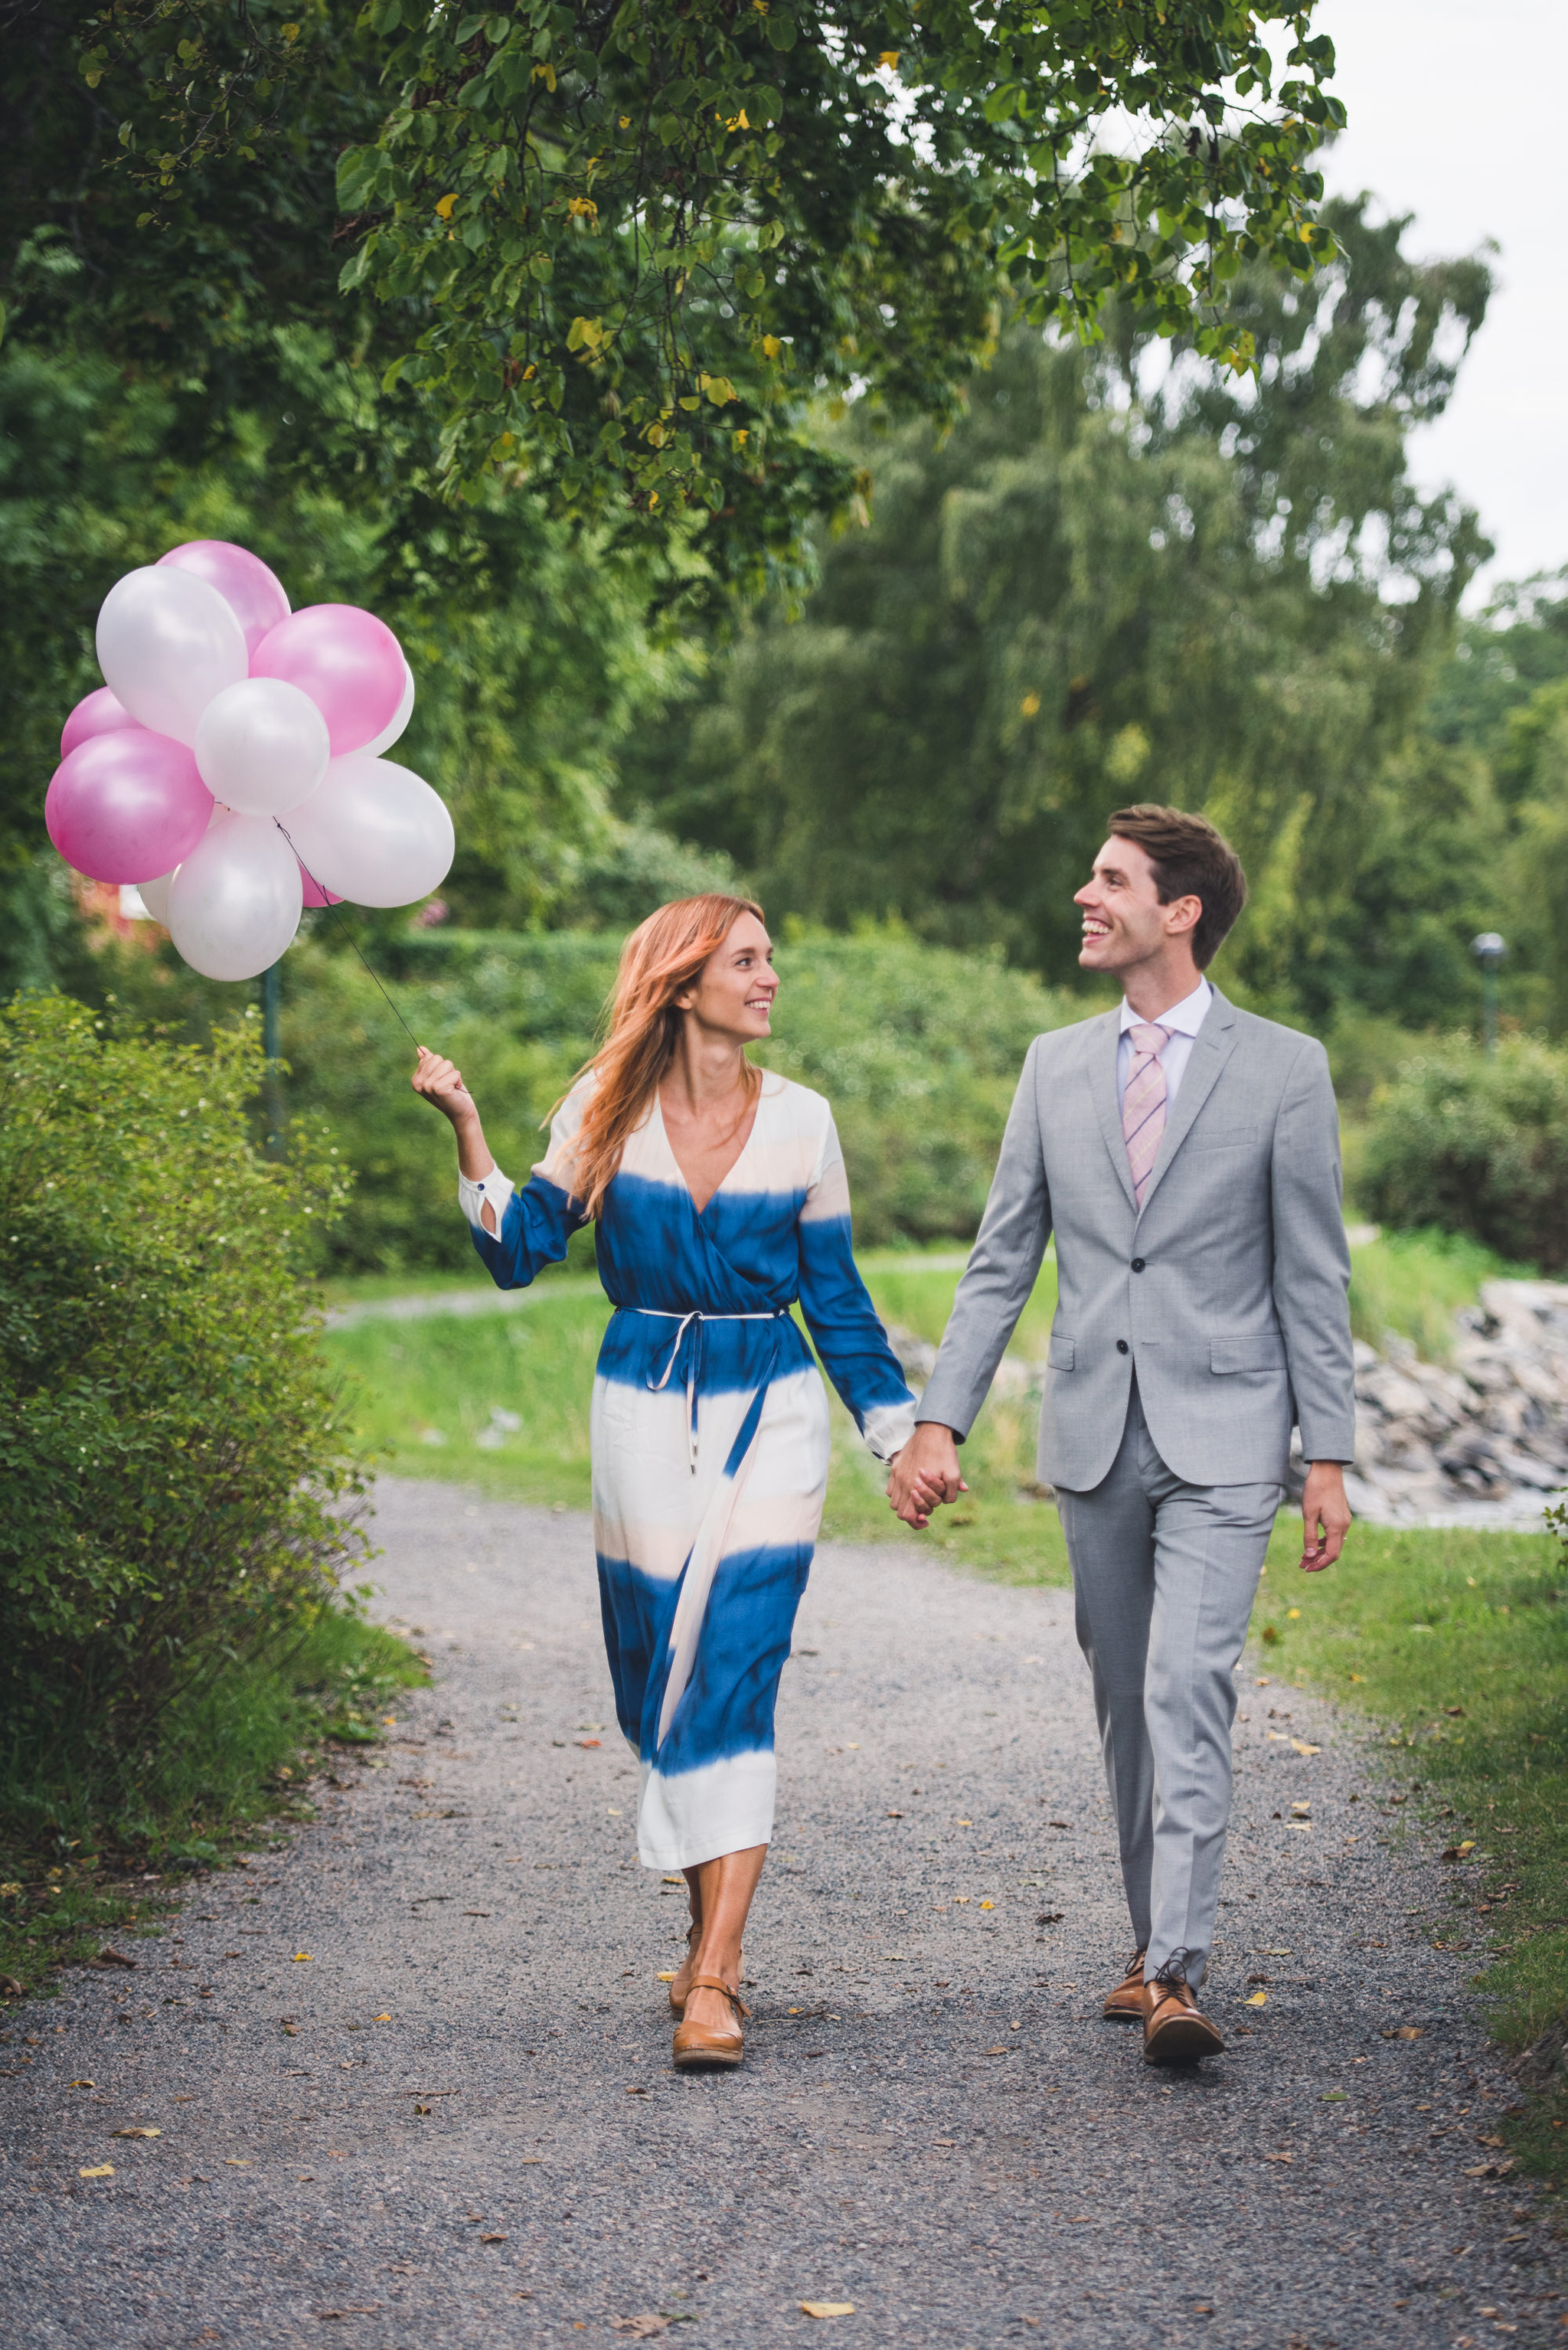 elopement in stockholm with balloons